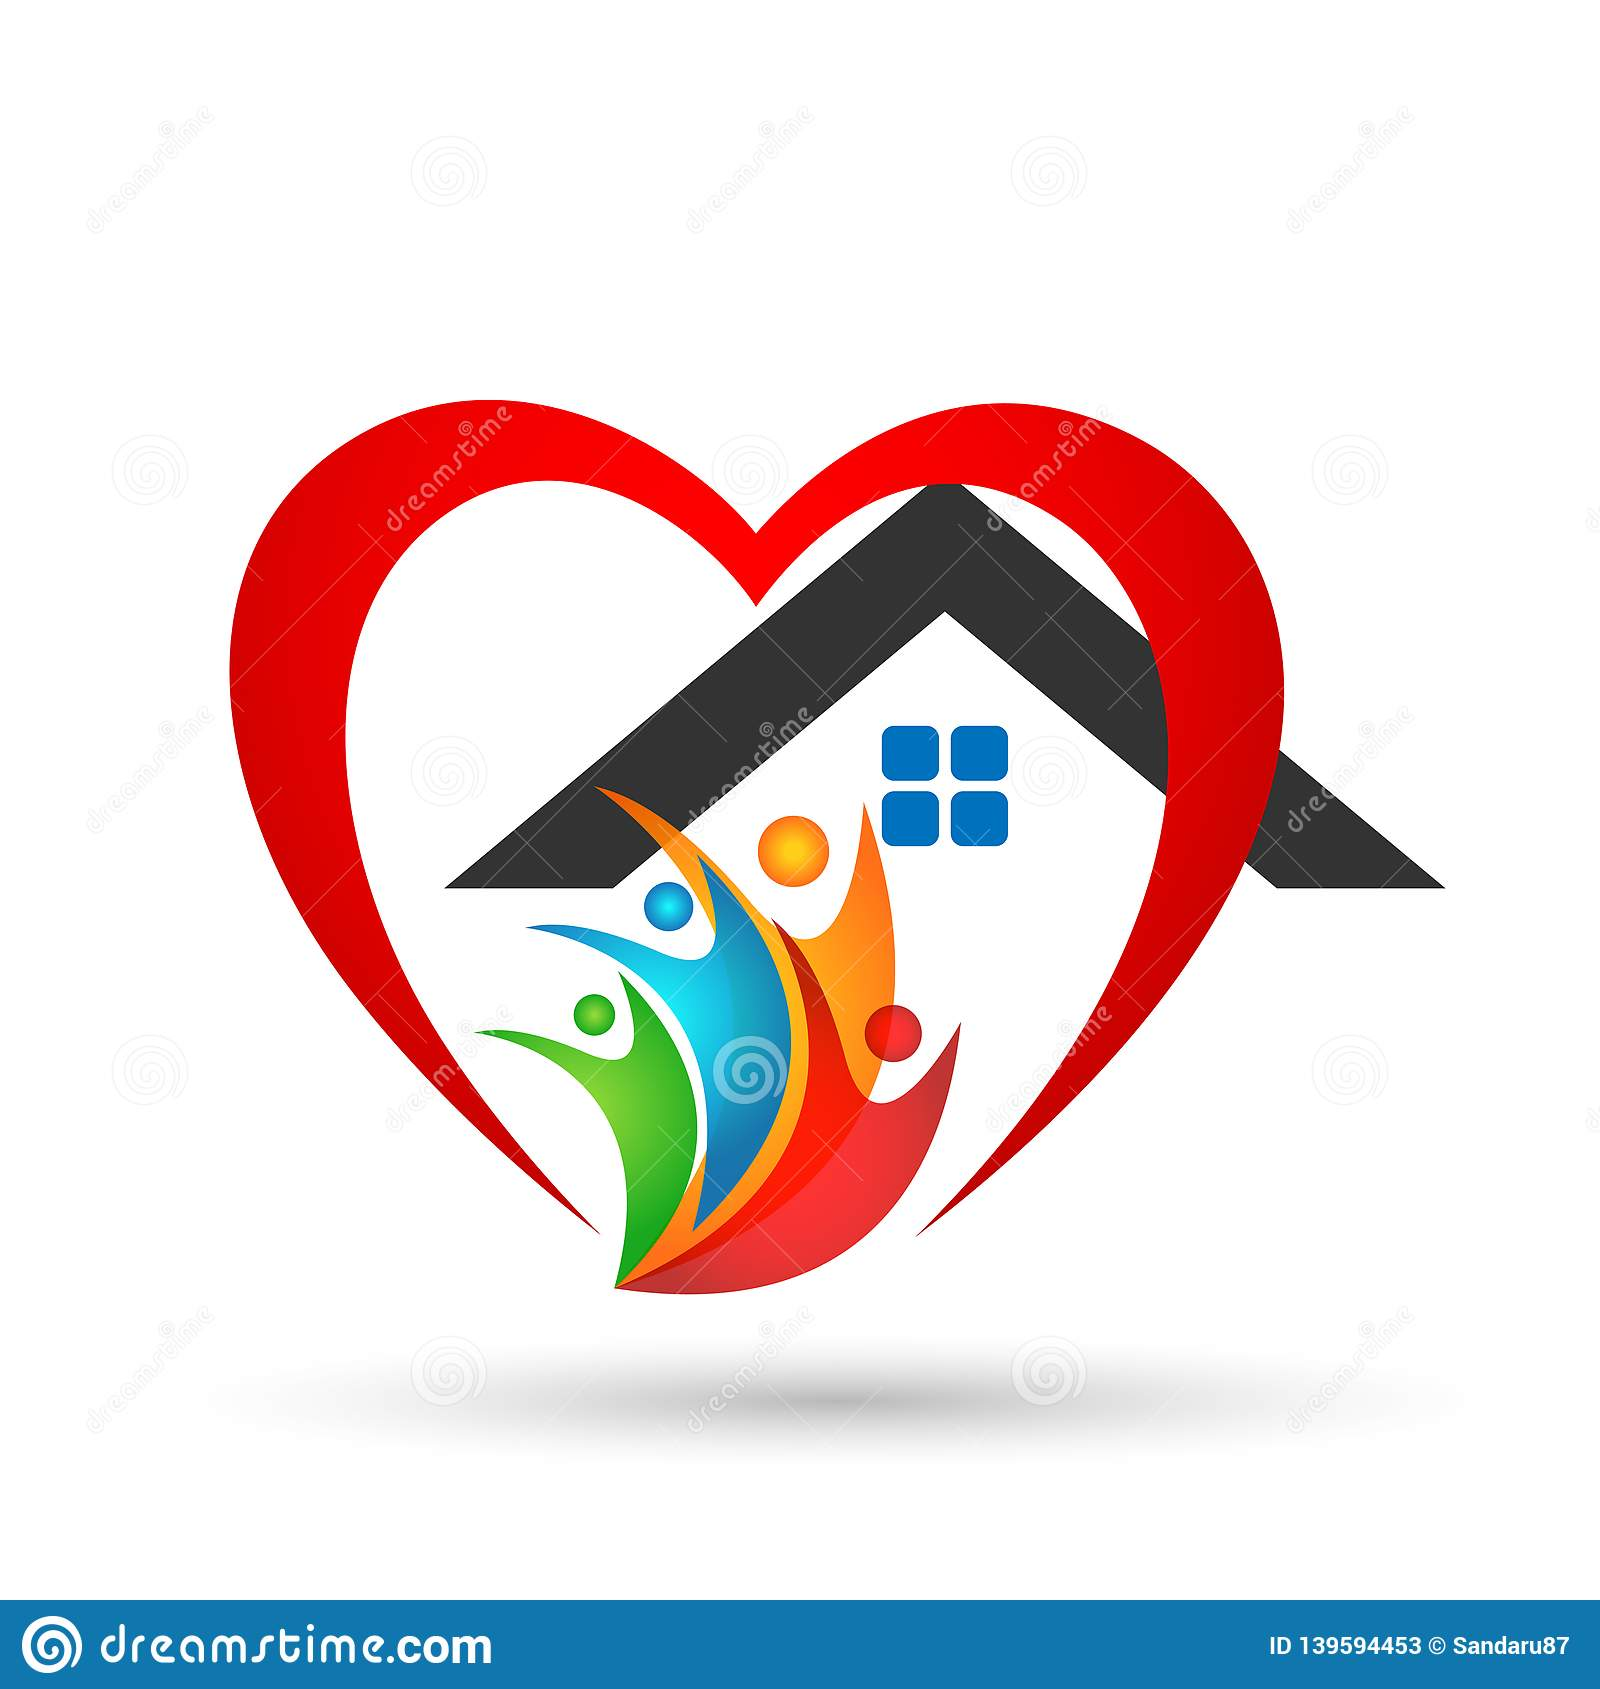 Family in happy union home logo, family, parent, kids,green love, parenting, care, symbol icon design vector on white background